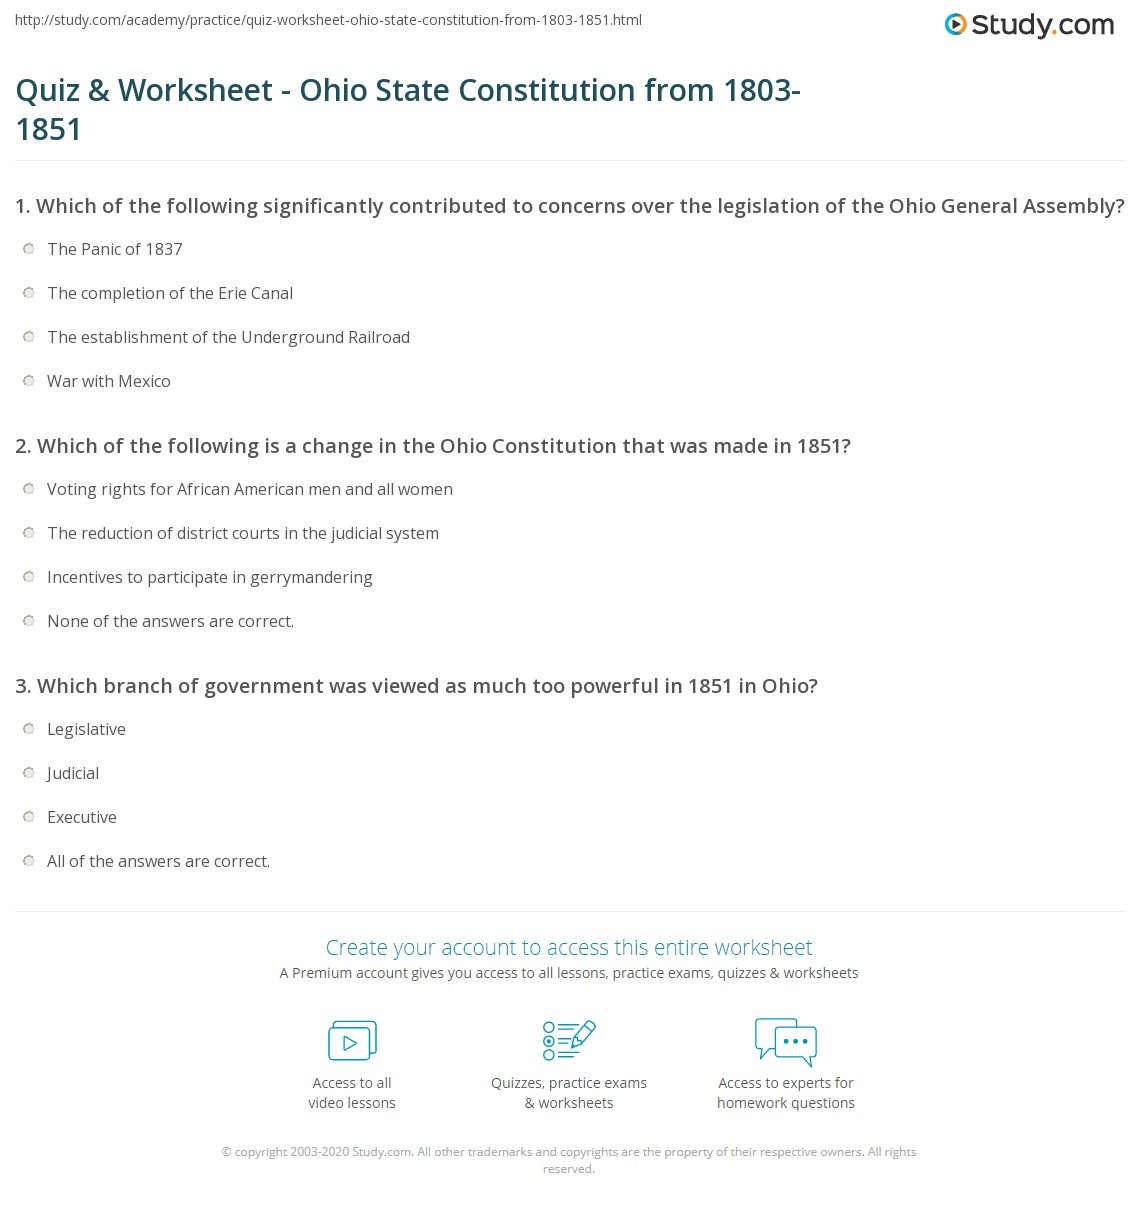 Worksheets Constitution Worksheet quiz worksheet ohio state constitution from 1803 1851 study com print changes to the worksheet